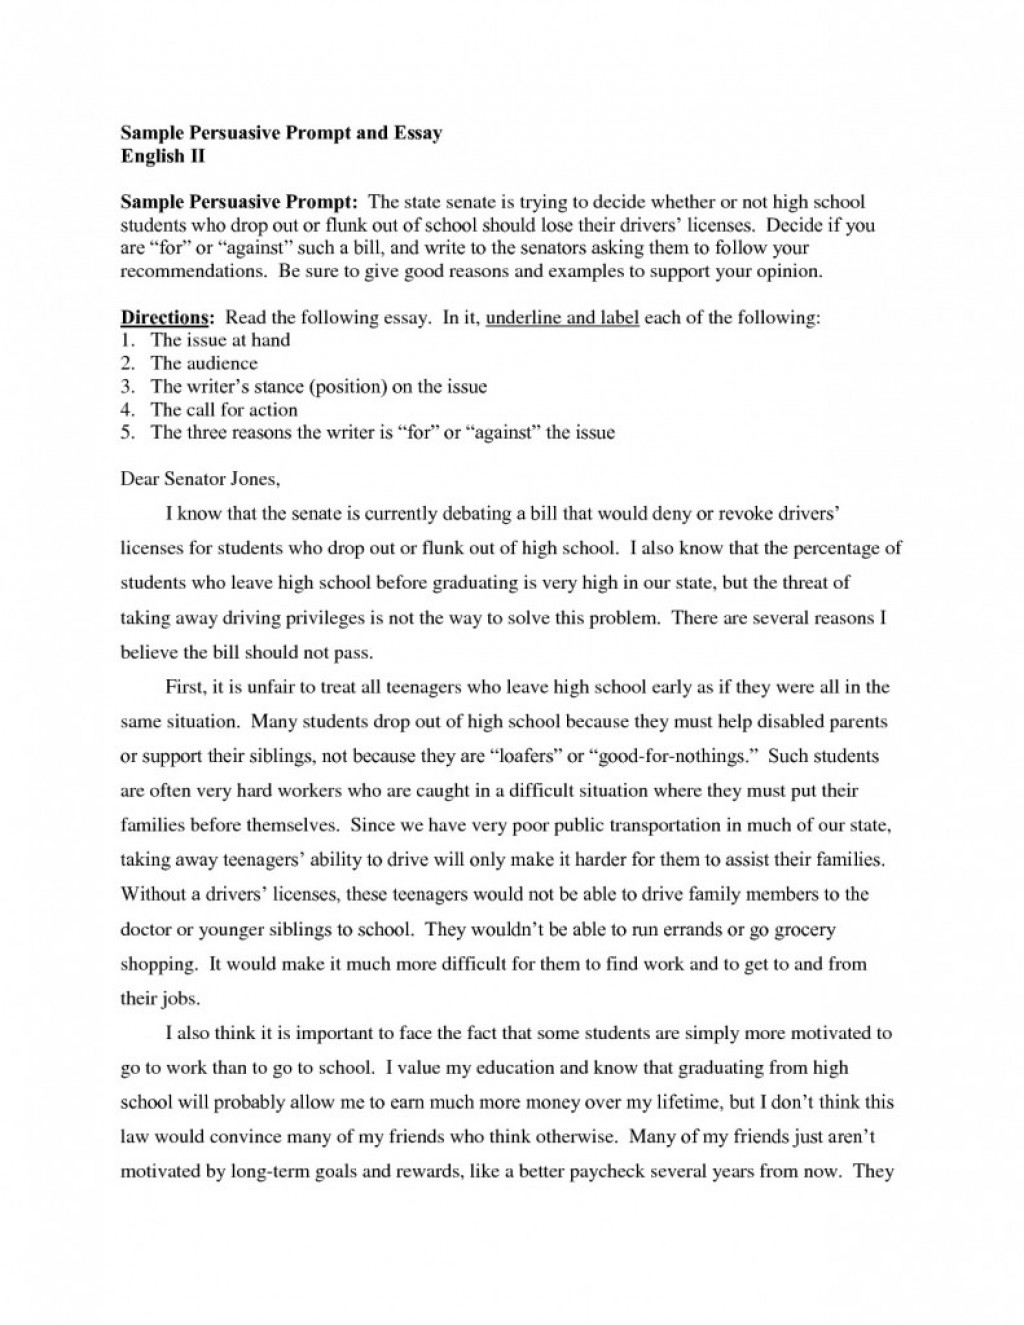 014 Essay Example Should College Free Persuasive Examples High School Writings And Essays Not Persusive Pertaini Argumentative Education For Everyone Textbooks Impressive Be Large